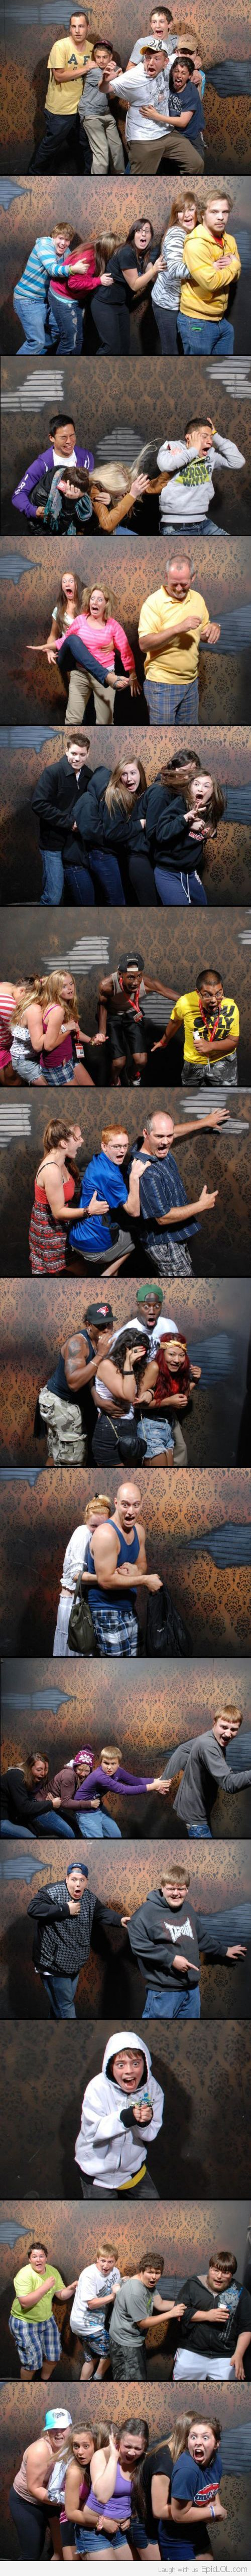 Stills from a haunted house! haha!